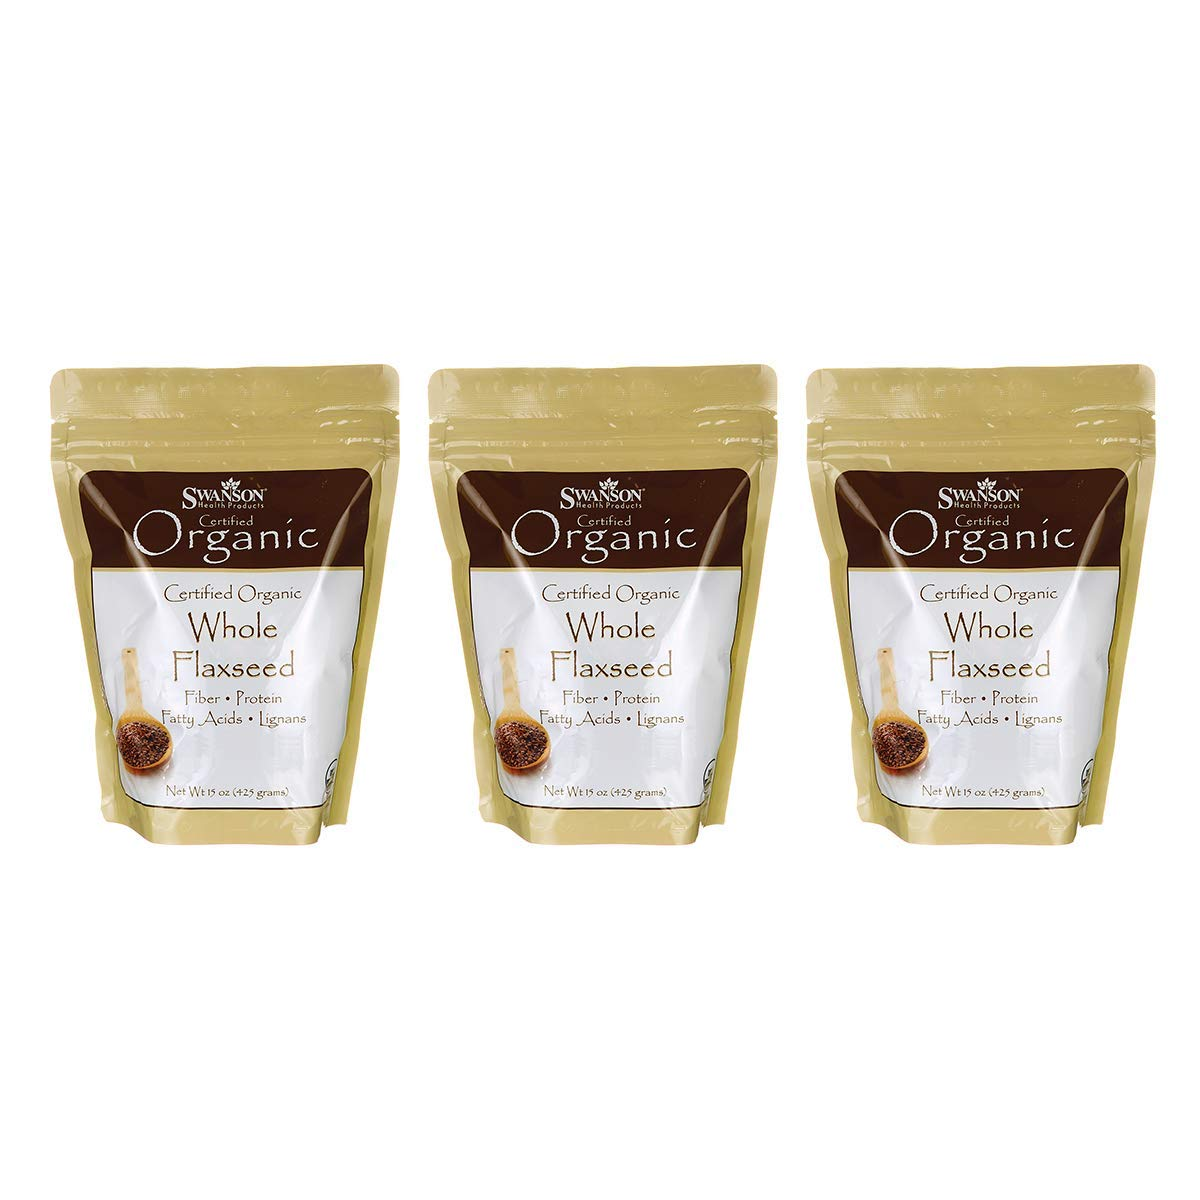 Swanson Certified Organic Whole Flaxseed 15 Ounce (425 g) Seeds (3 Pack)